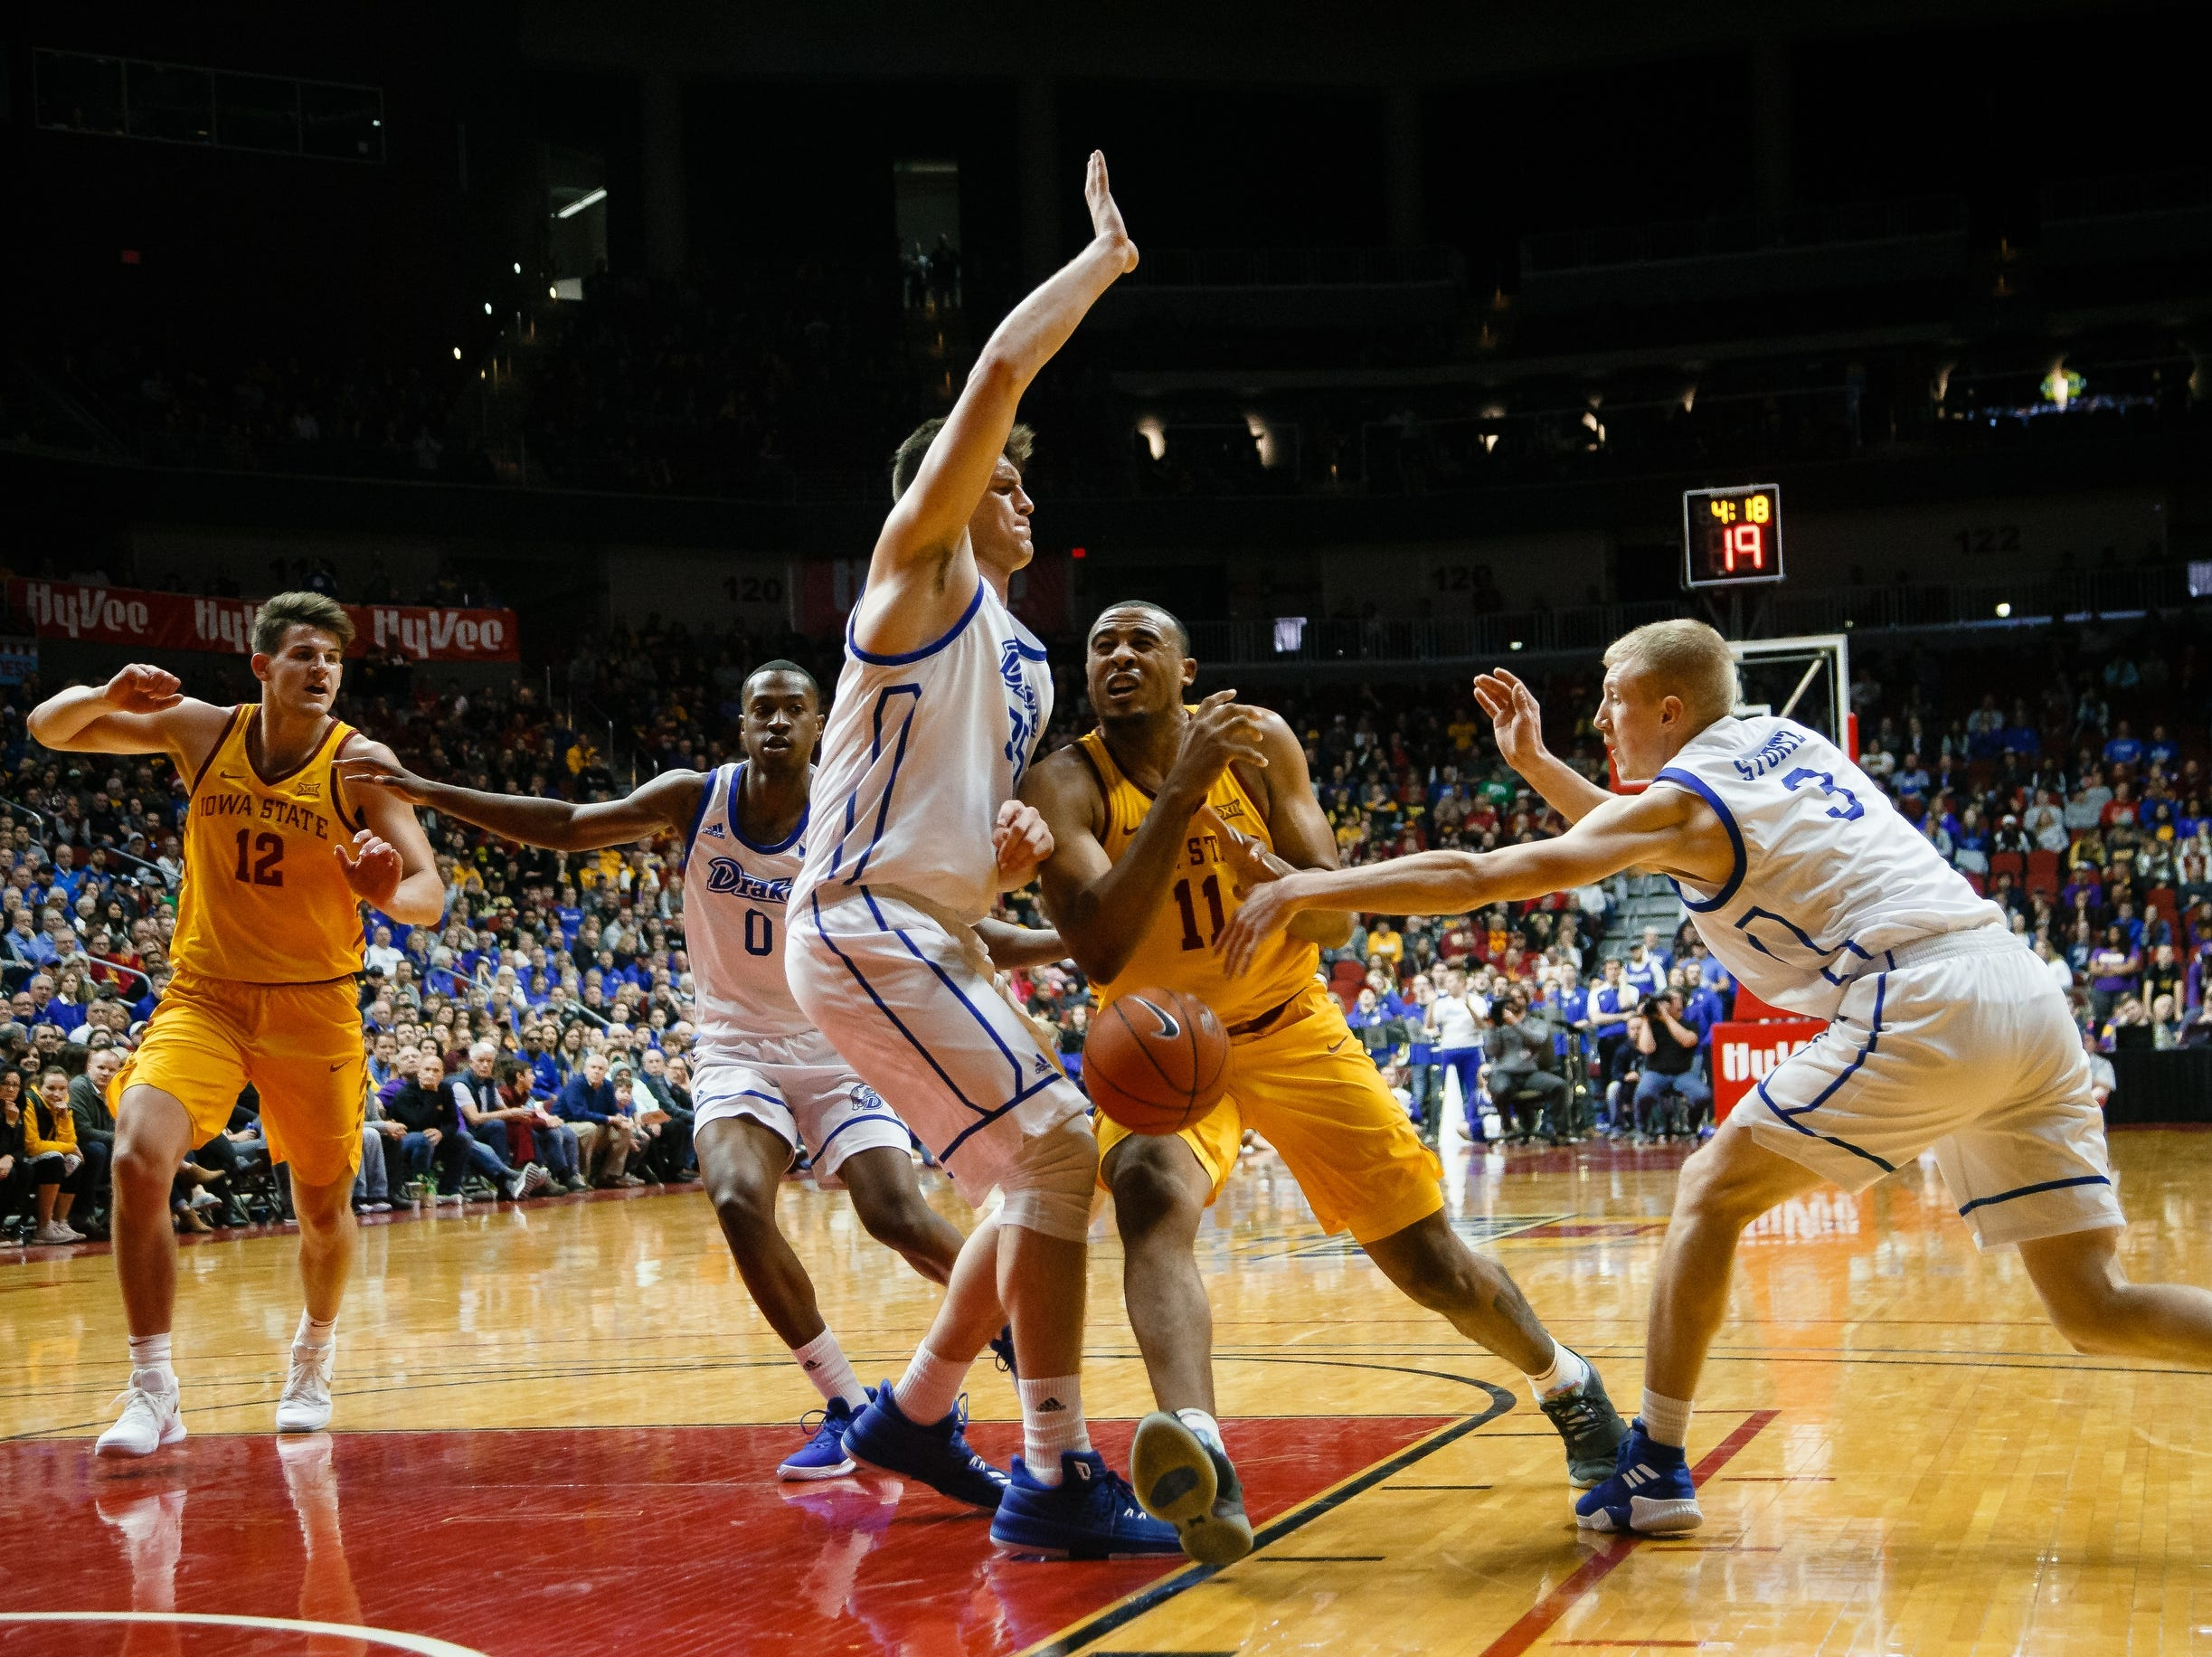 Iowa State's Talen Horton-Tucker (11) is defended by Drake's NickÊMcGlynn (35), left, and Drake's GarrettÊSturtz (3), right, during their basketball game at the Hy-Vee Classic on Saturday, Dec. 15, 2018, in Des Moines. Iowa State would go on to defeat Drake 77-68.